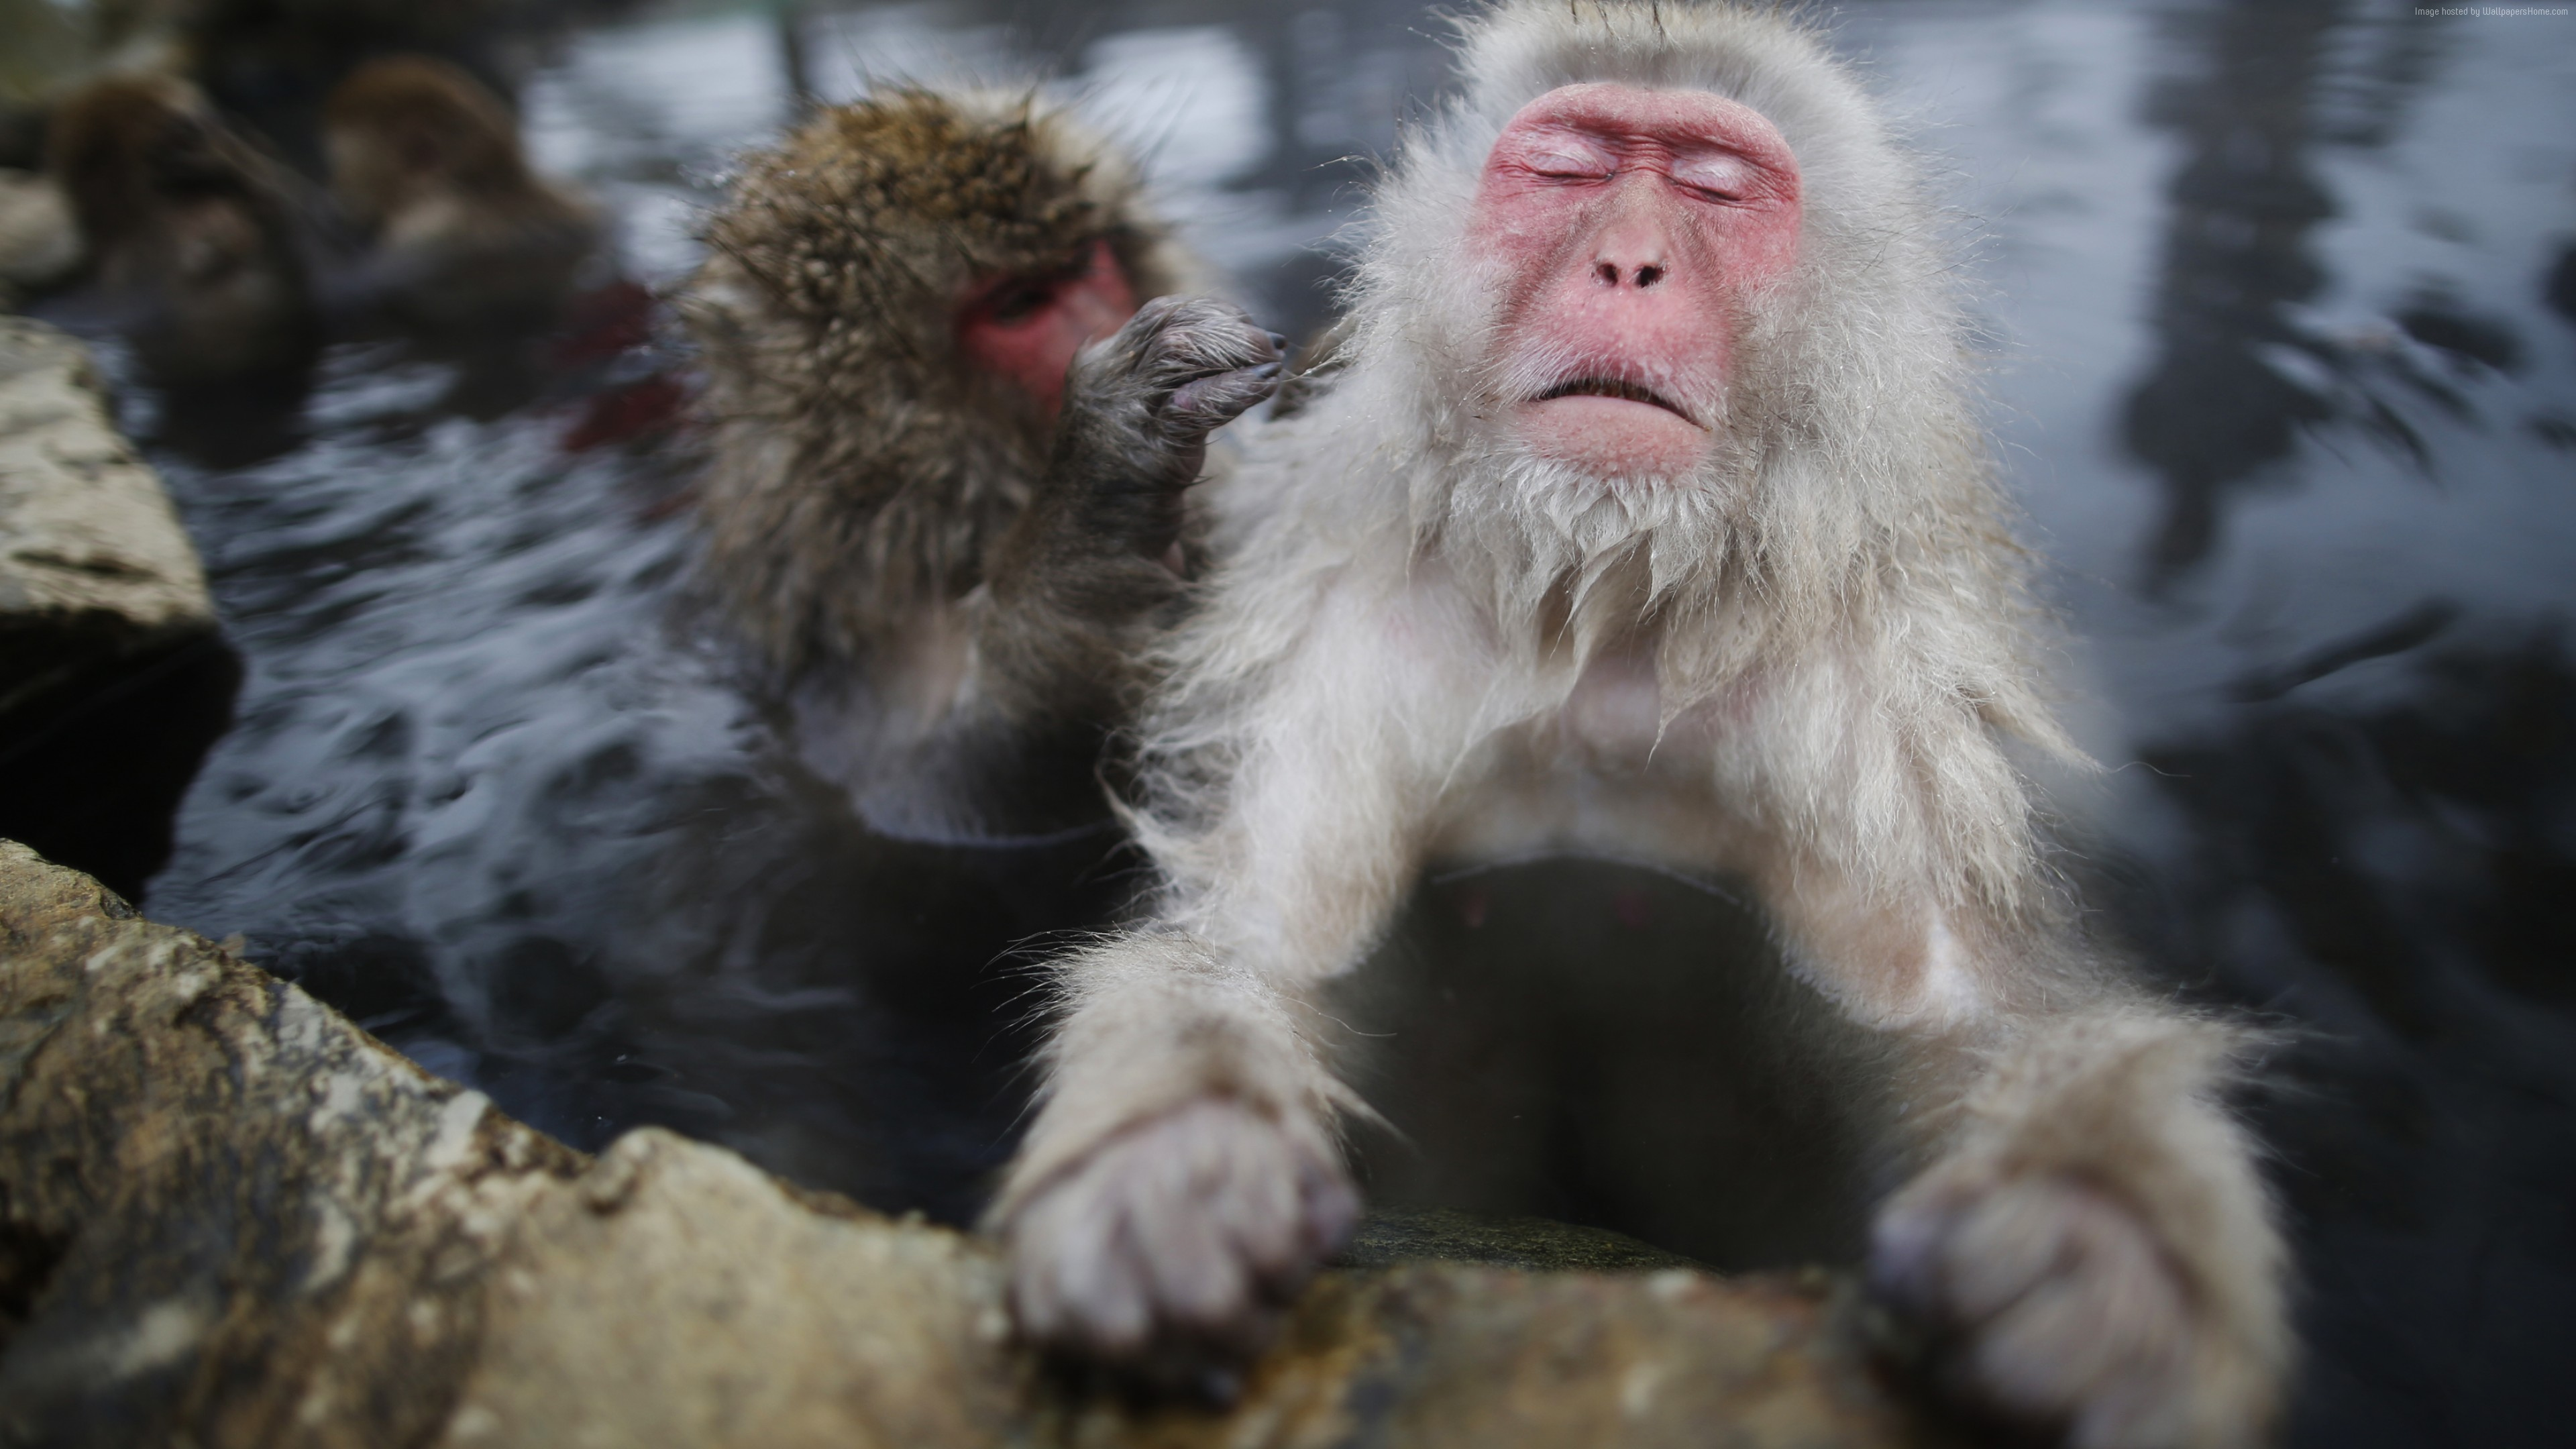 Wallpaper monkey, water, cute animals, funny, Animals